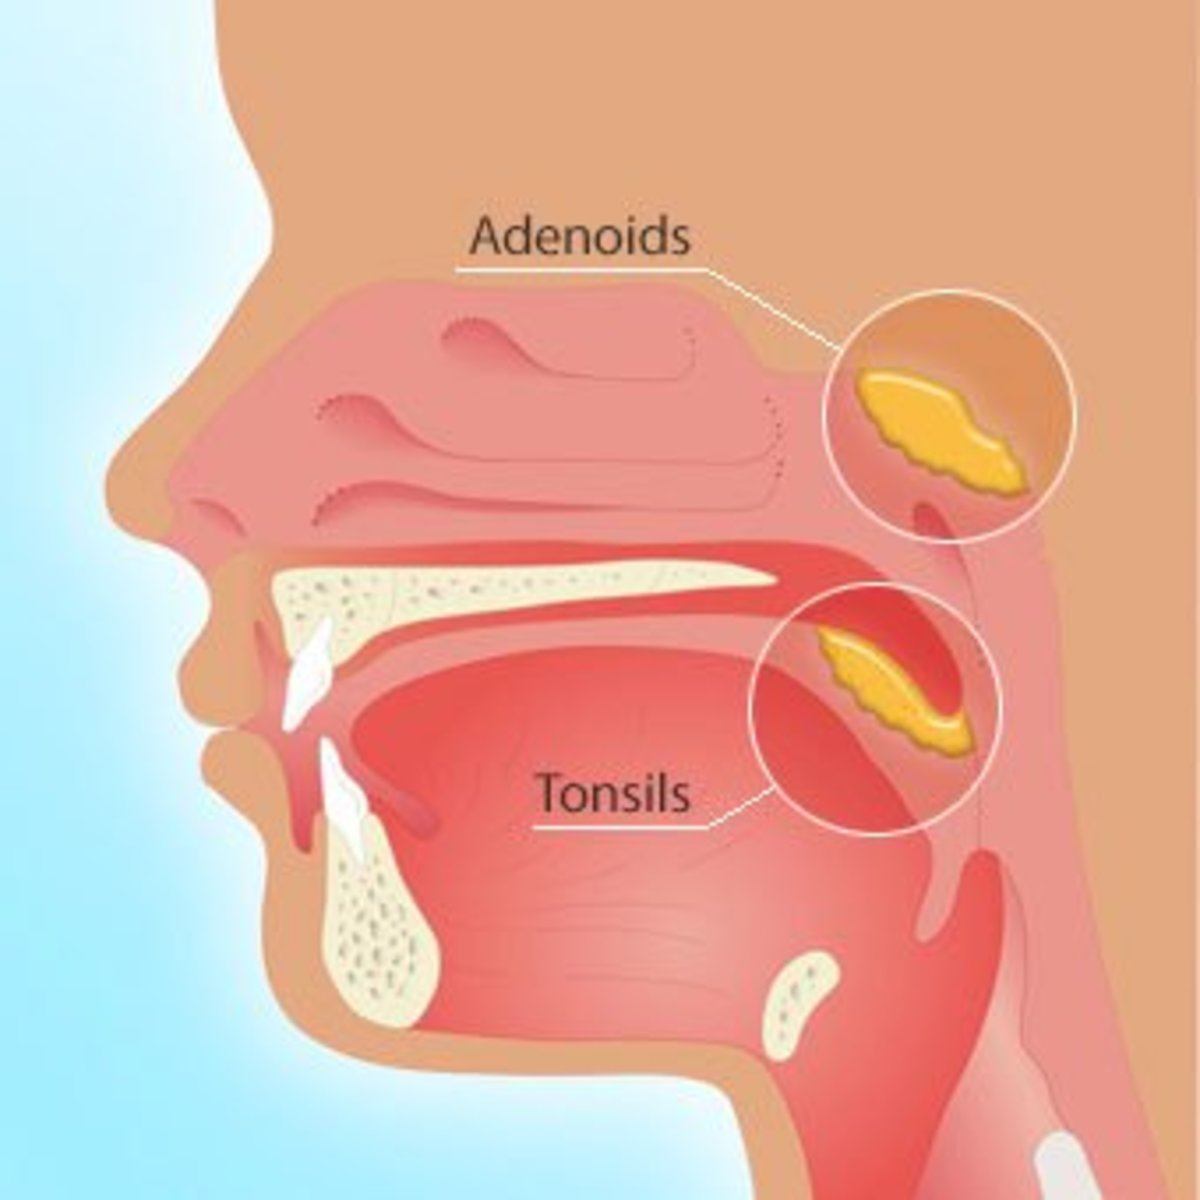 Does My Child Need Their Tonsils and Adenoids Removed?